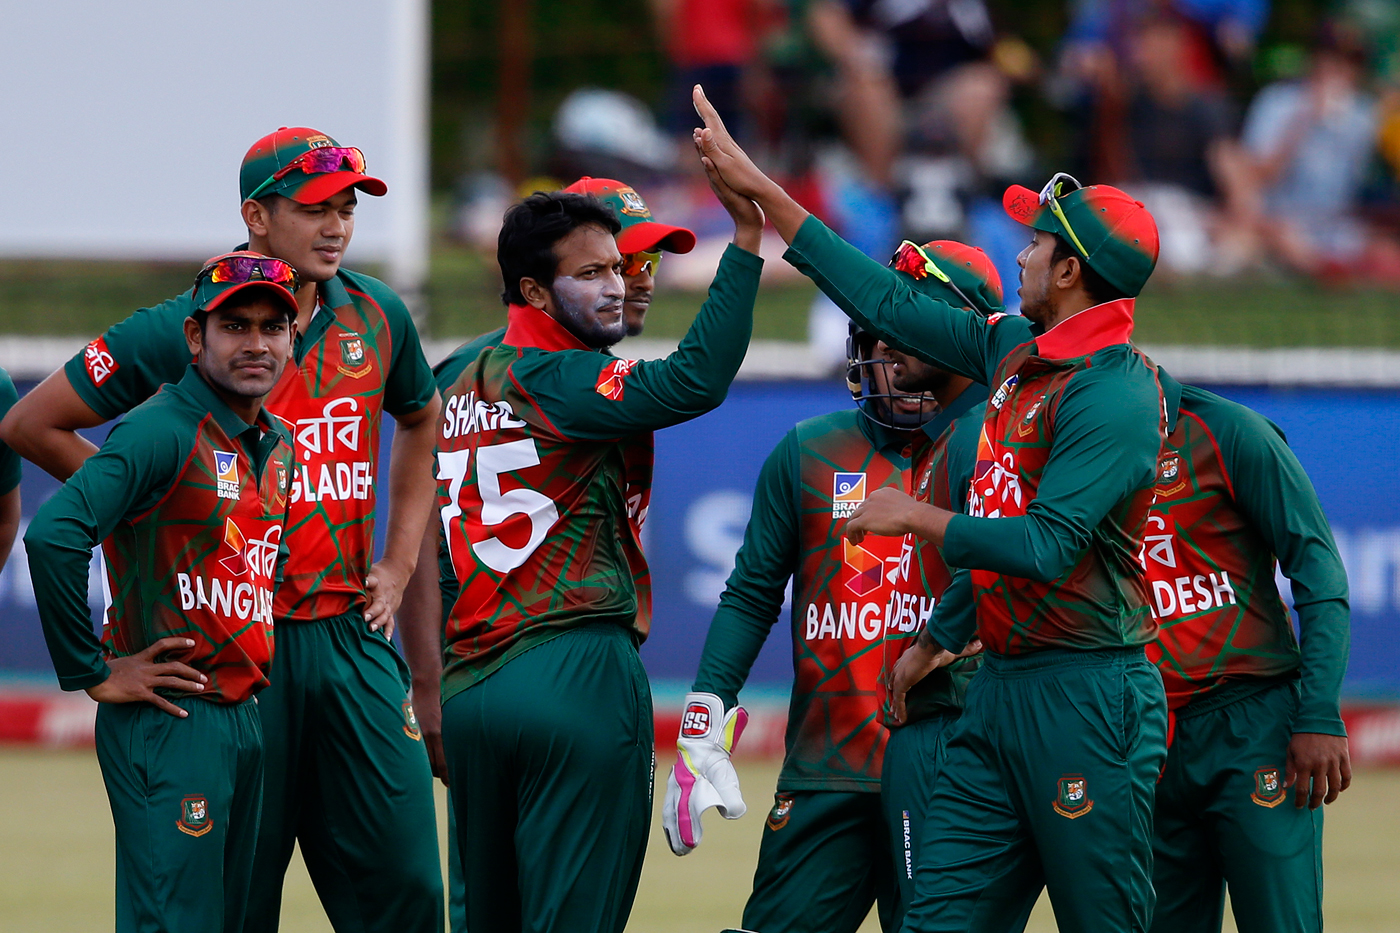 cricket in bangladesh — bangladesh cricket (@bcbtigers) june 10, 2018 efforts being made to develop women's cricket the bcb believes bangladesh's success in the asia cup has come from combined efforts from the board and the cricketers.